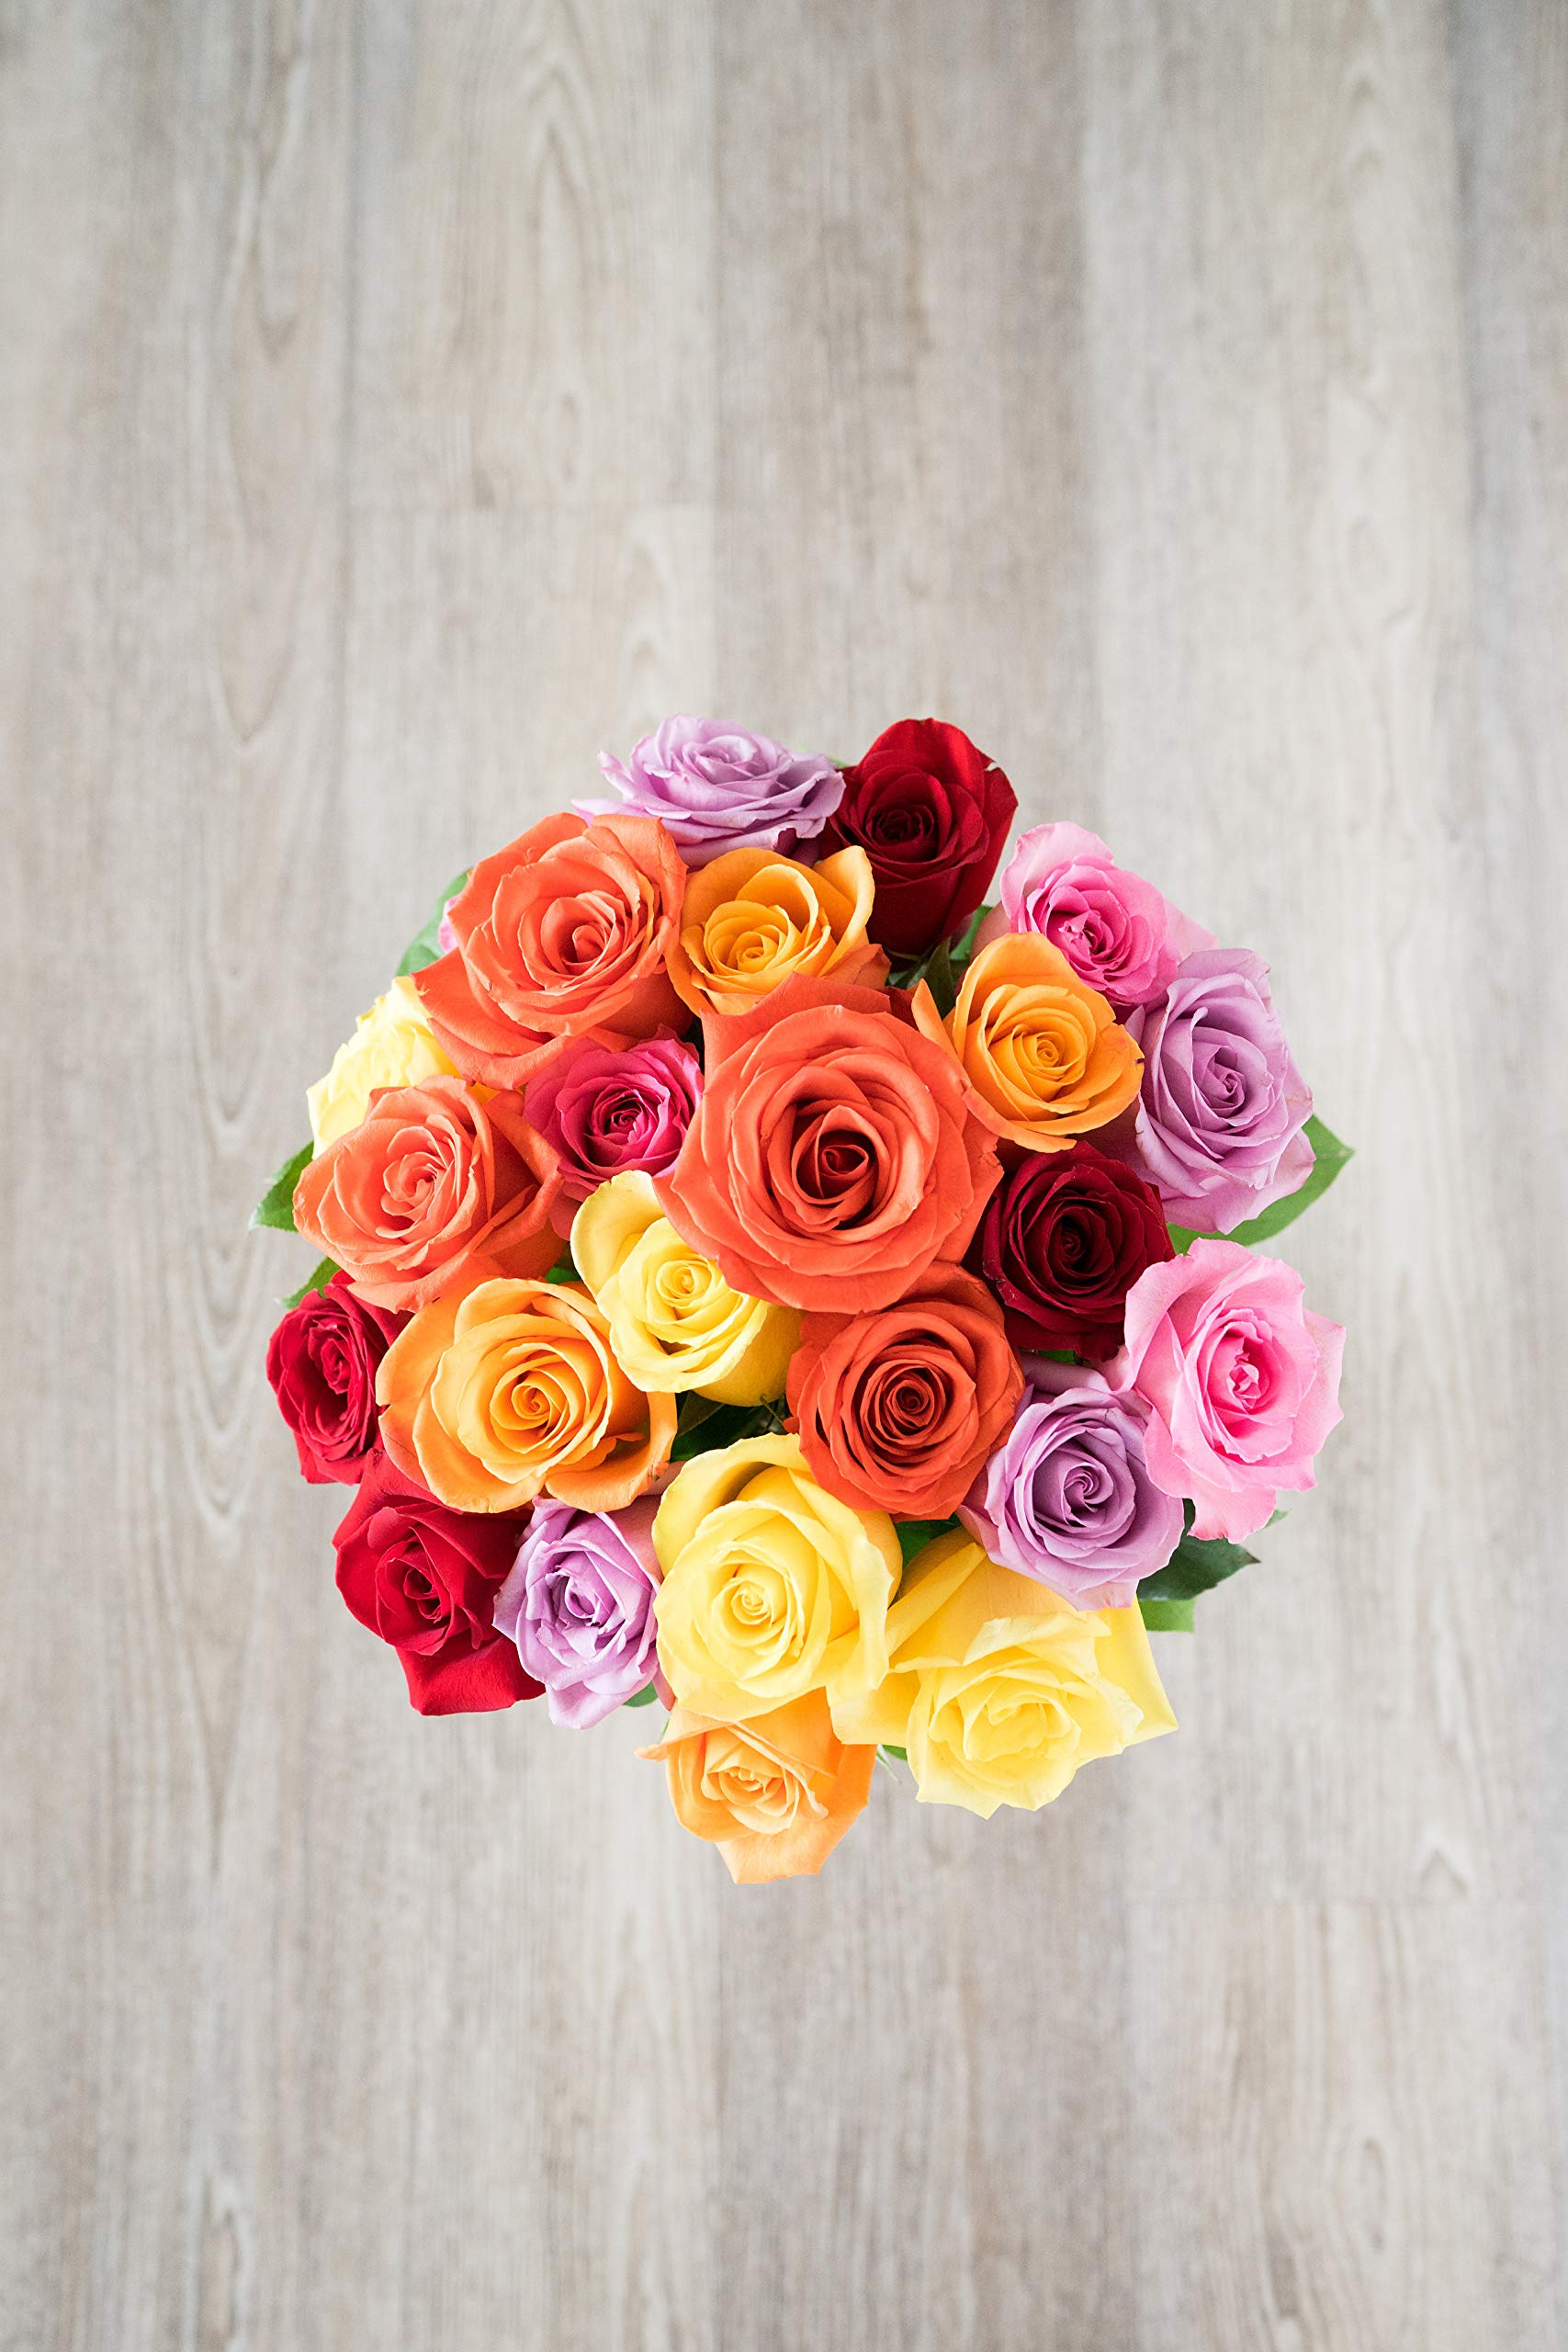 Flowers - Two Dozen Rainbow Roses with Godiva & Bear (Free Vase Included) by From You Flowers (Image #5)